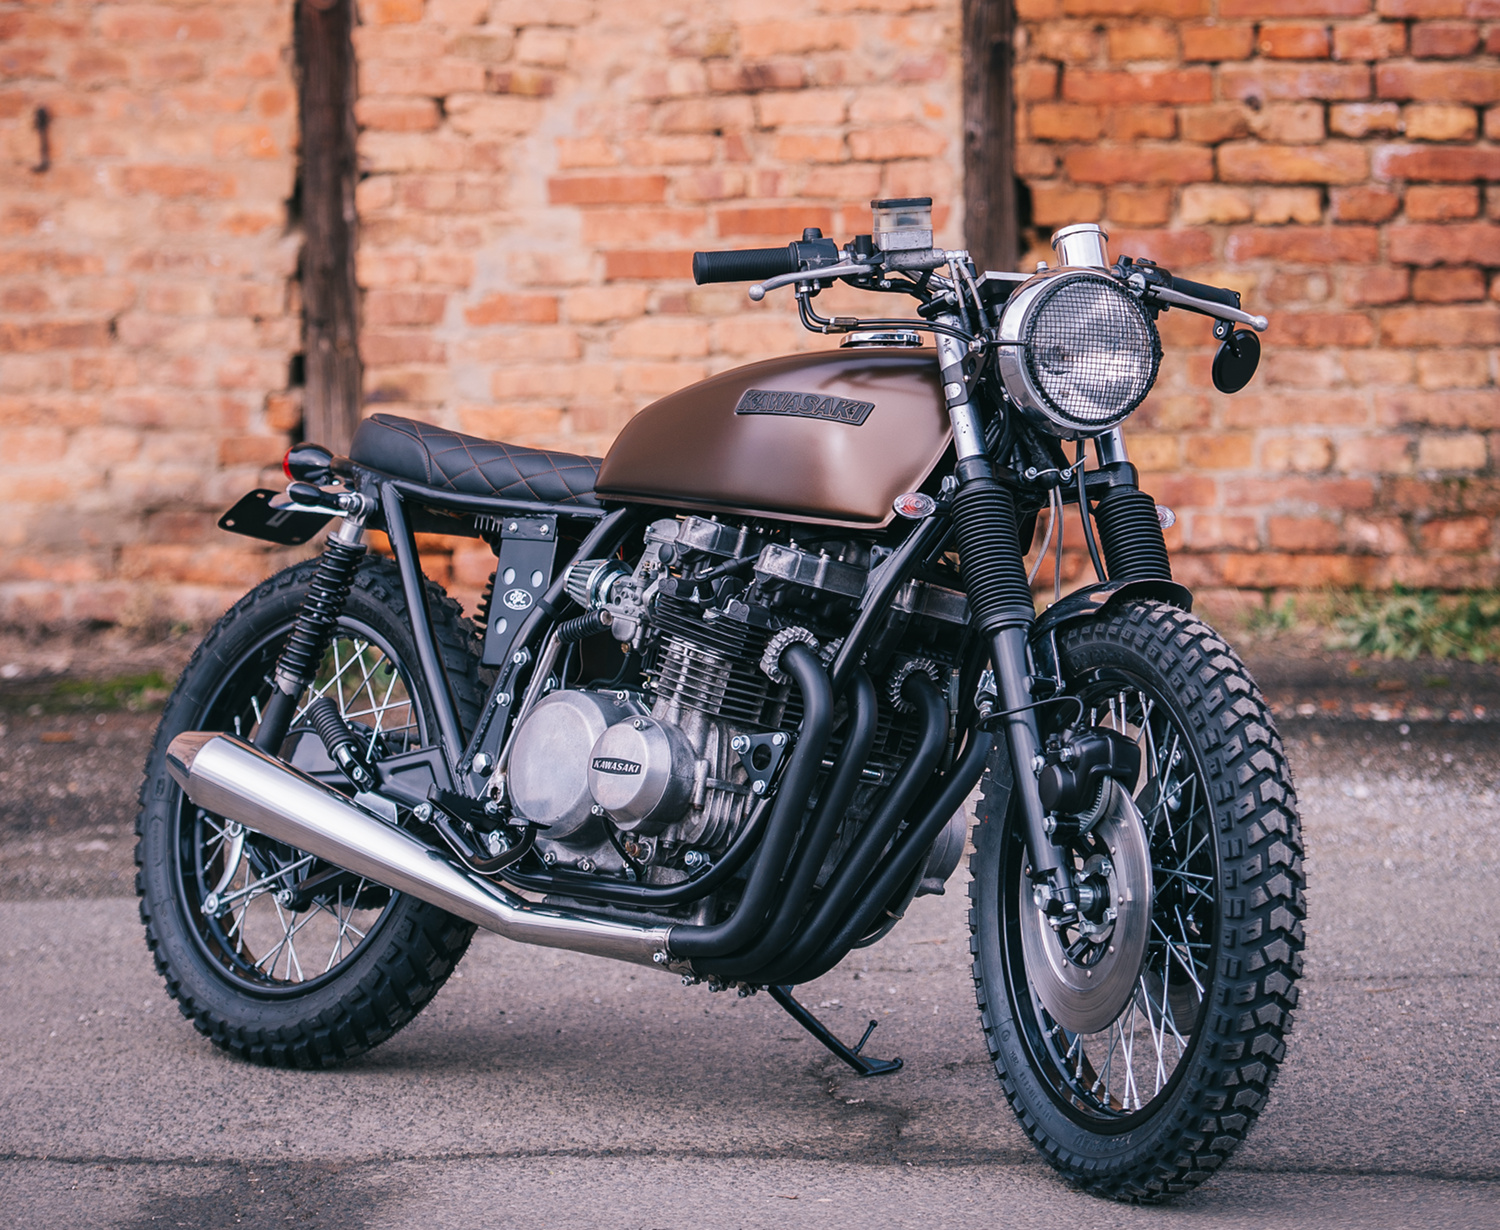 Kawasaki KZ650 Tracker By Retro Bikes Croatia